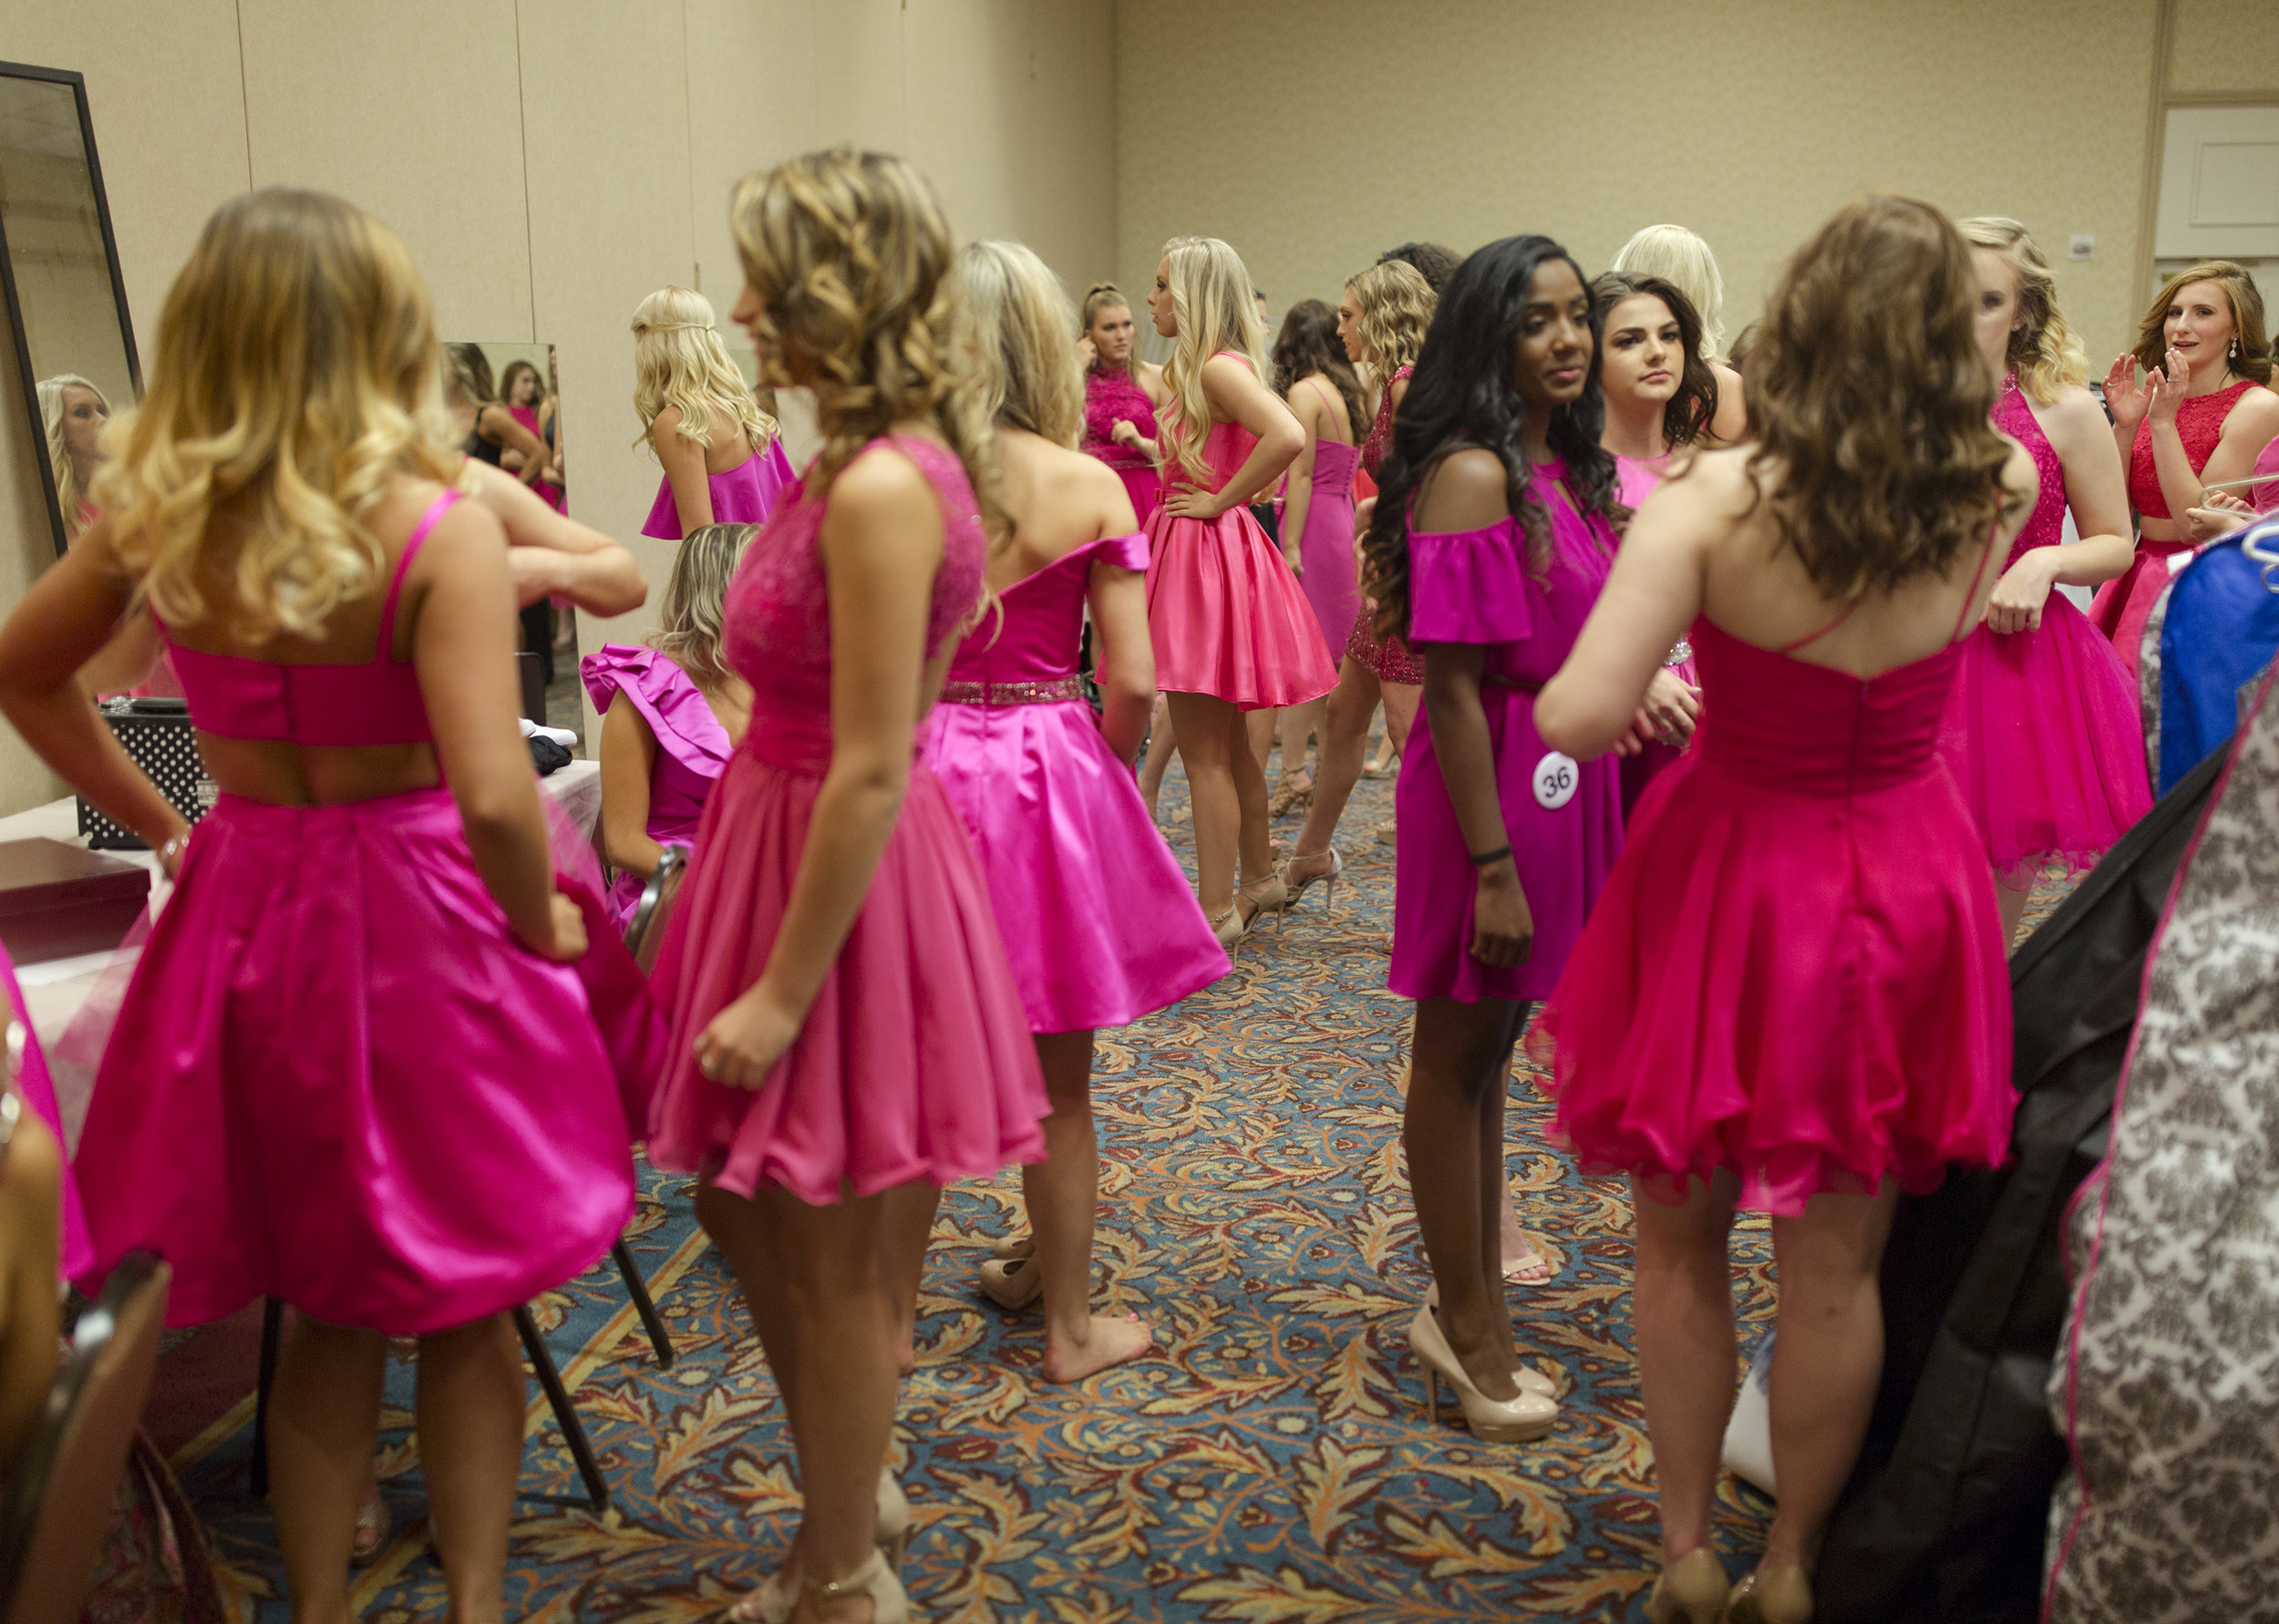 Miss Maine Teen USA contestants in the back room before going on stage. Miss Maine and Miss Teen USA are held simultaneously.